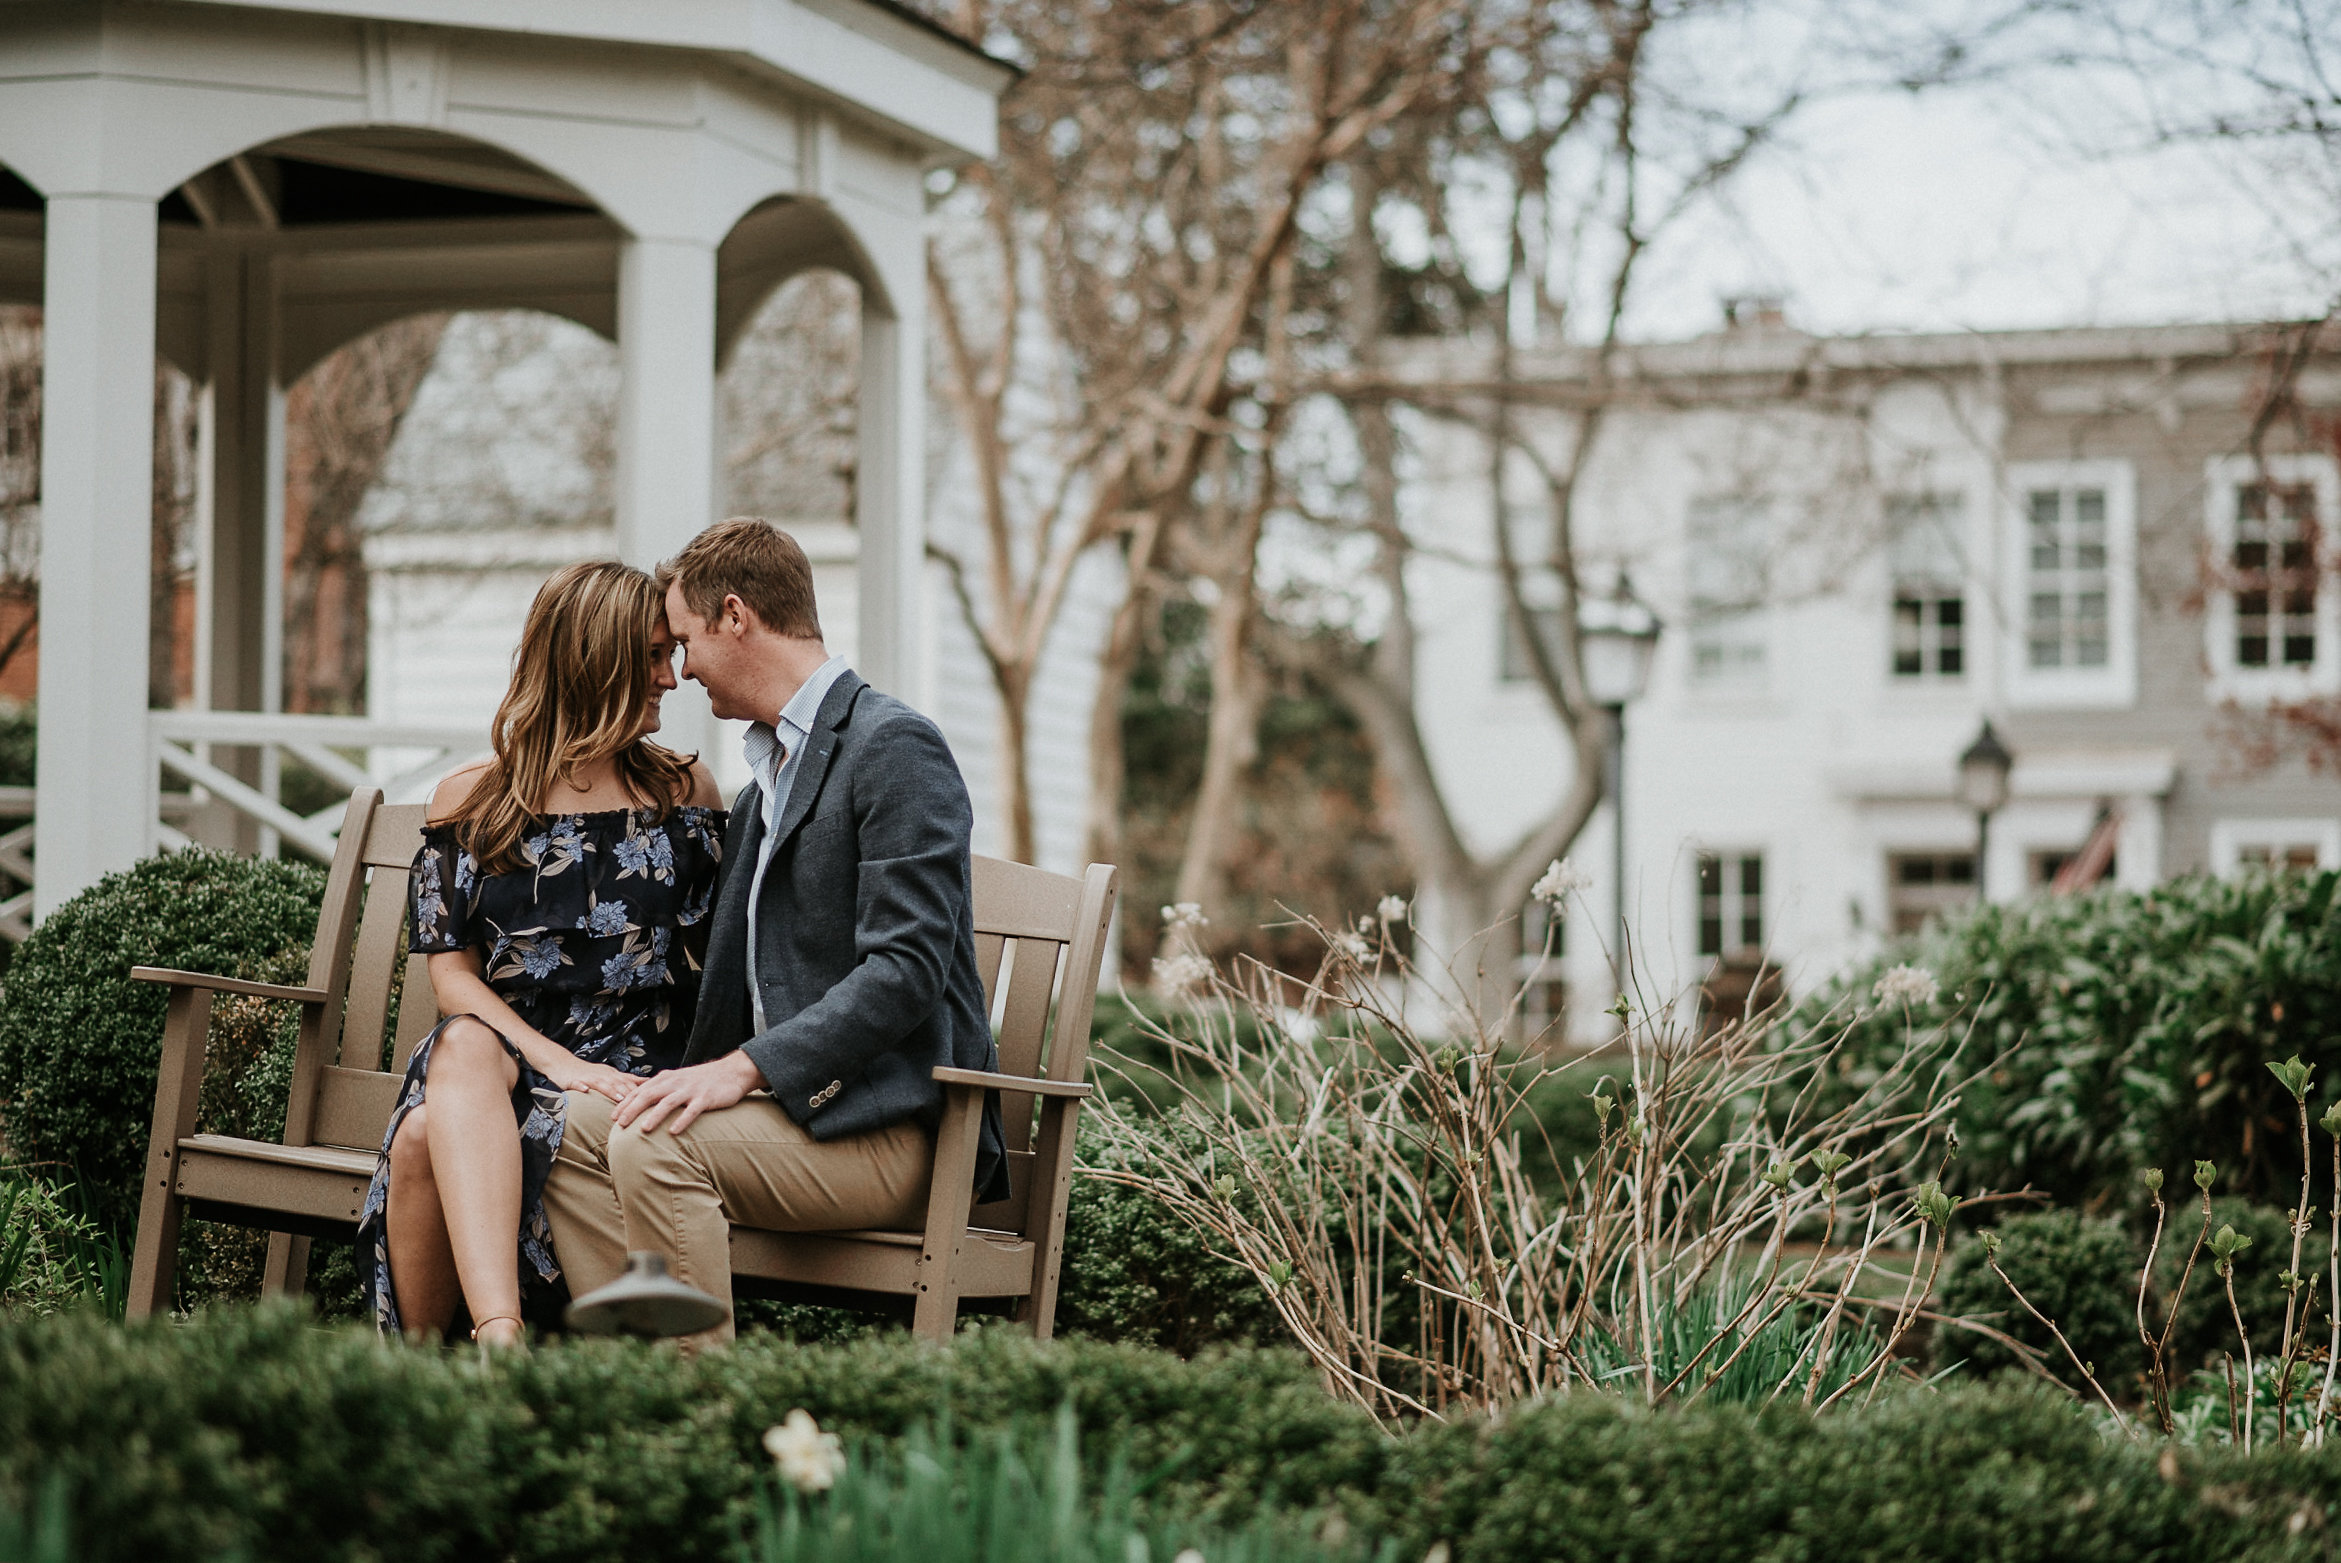 Couple touching foreheads sitting on bench